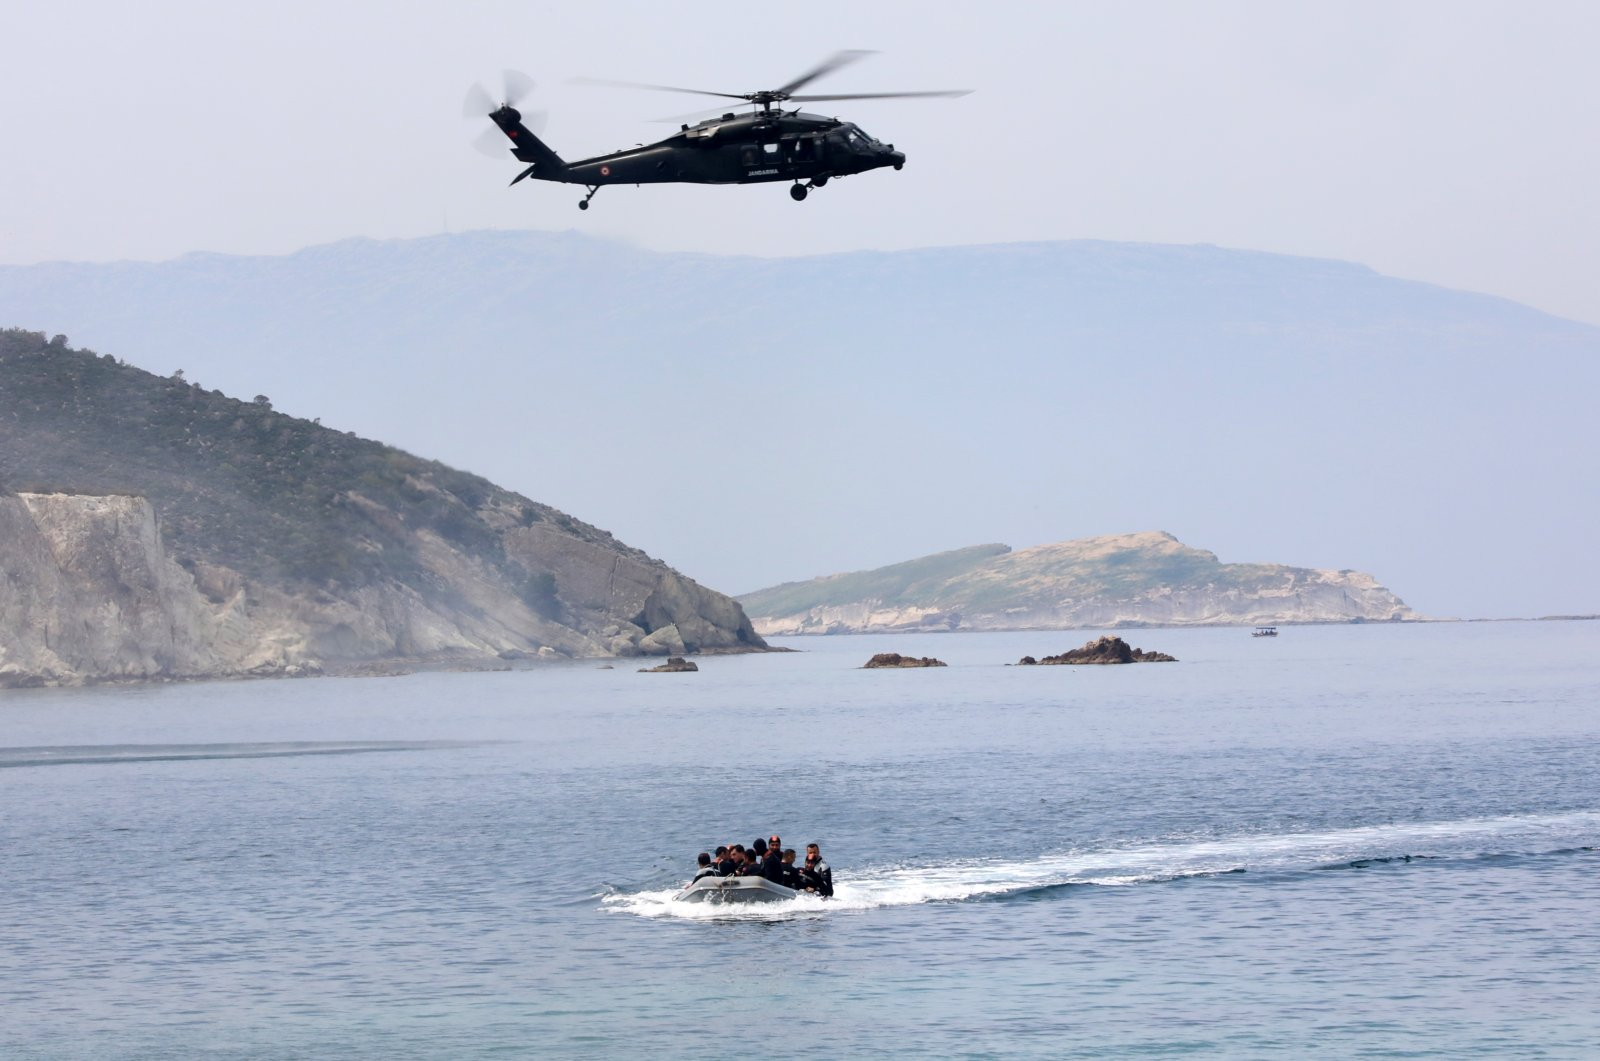 Turkish military units hold a drill in the Aegean Sea, Turkey, June 23, 2021. (AA Photo)